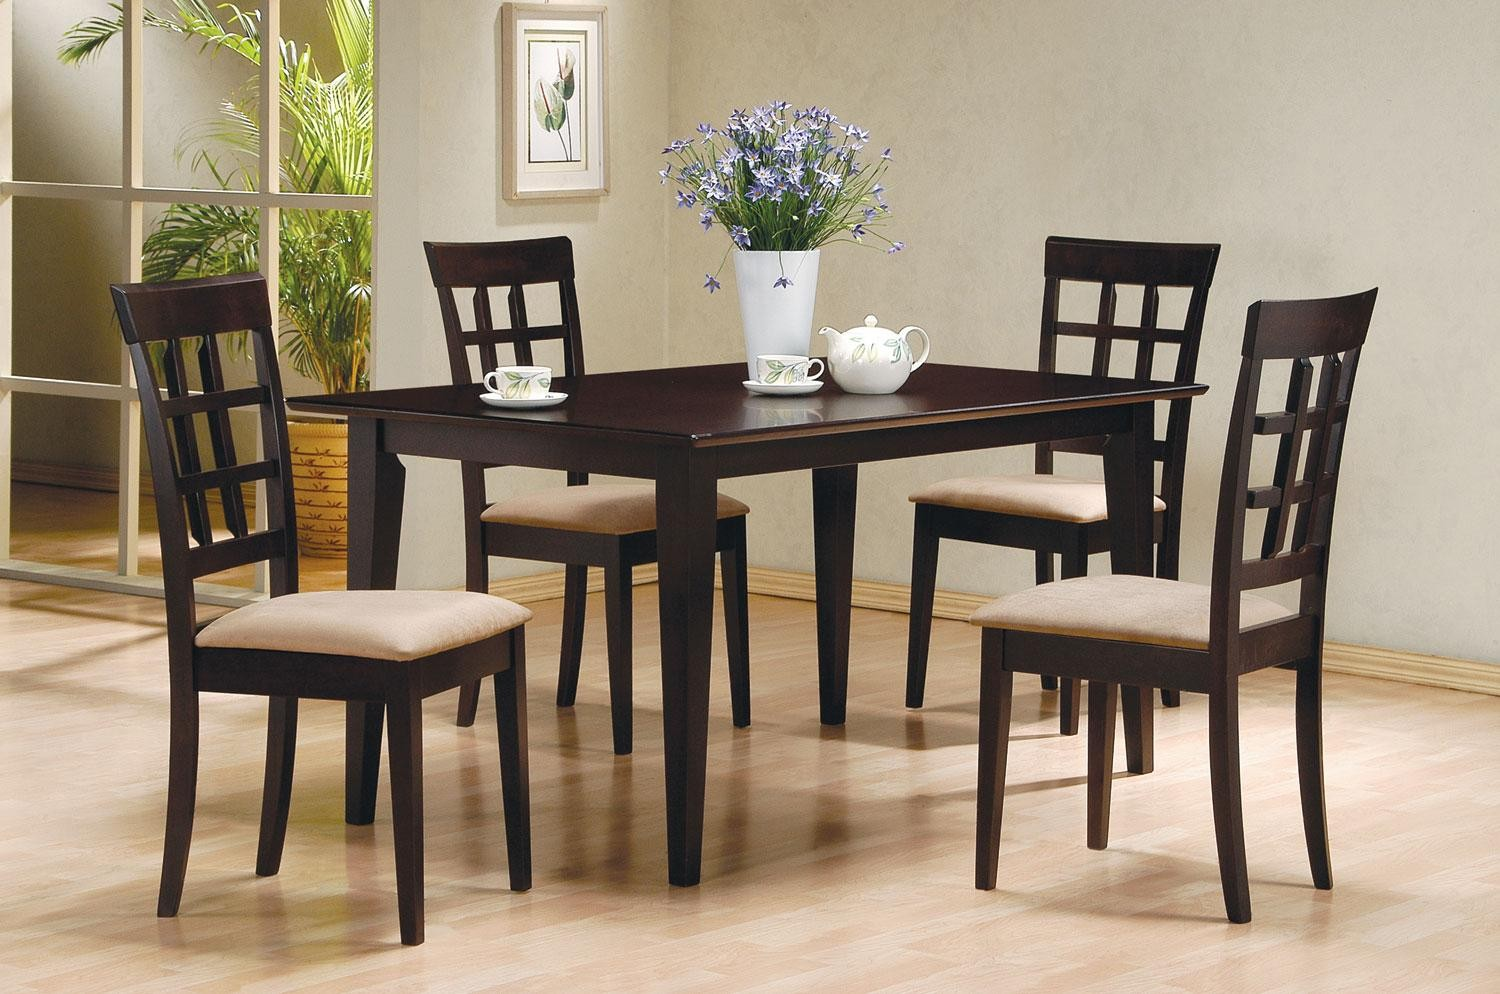 Dining Sets Tuscany Solid Wood Large Dining Set Table 6 Chairs: Mix & Match Cappuccino Dining Room Set From Coaster